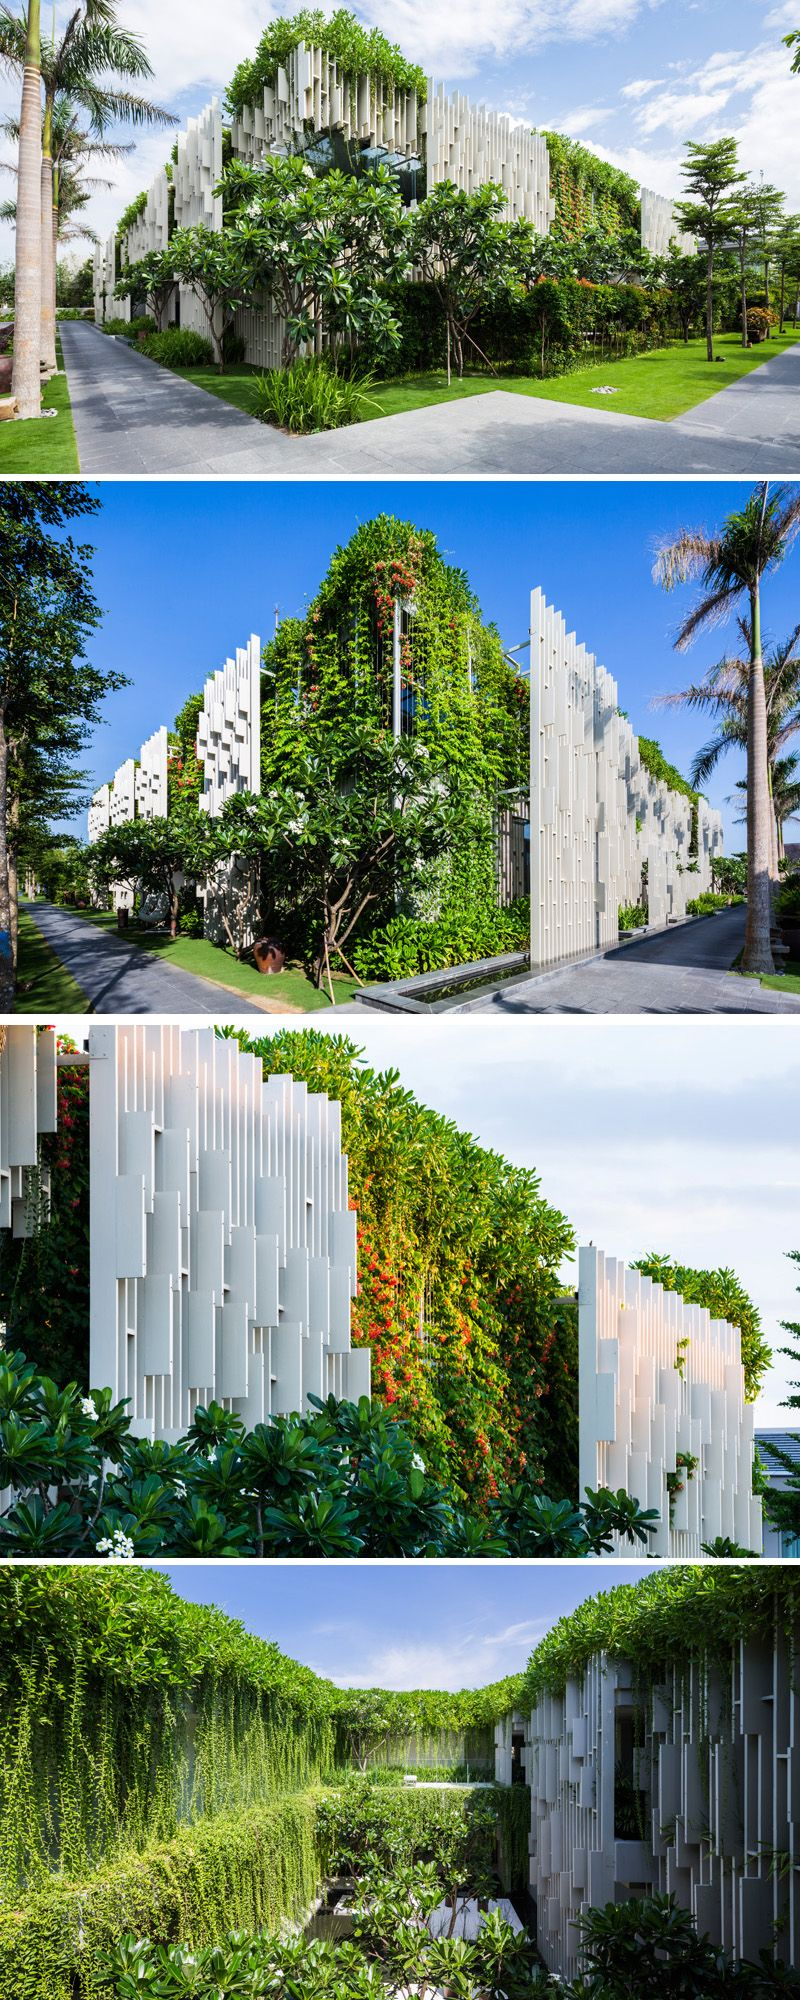 This New Resort Spa Is Covered In Hanging Gardens | ARCHITECTURE ...